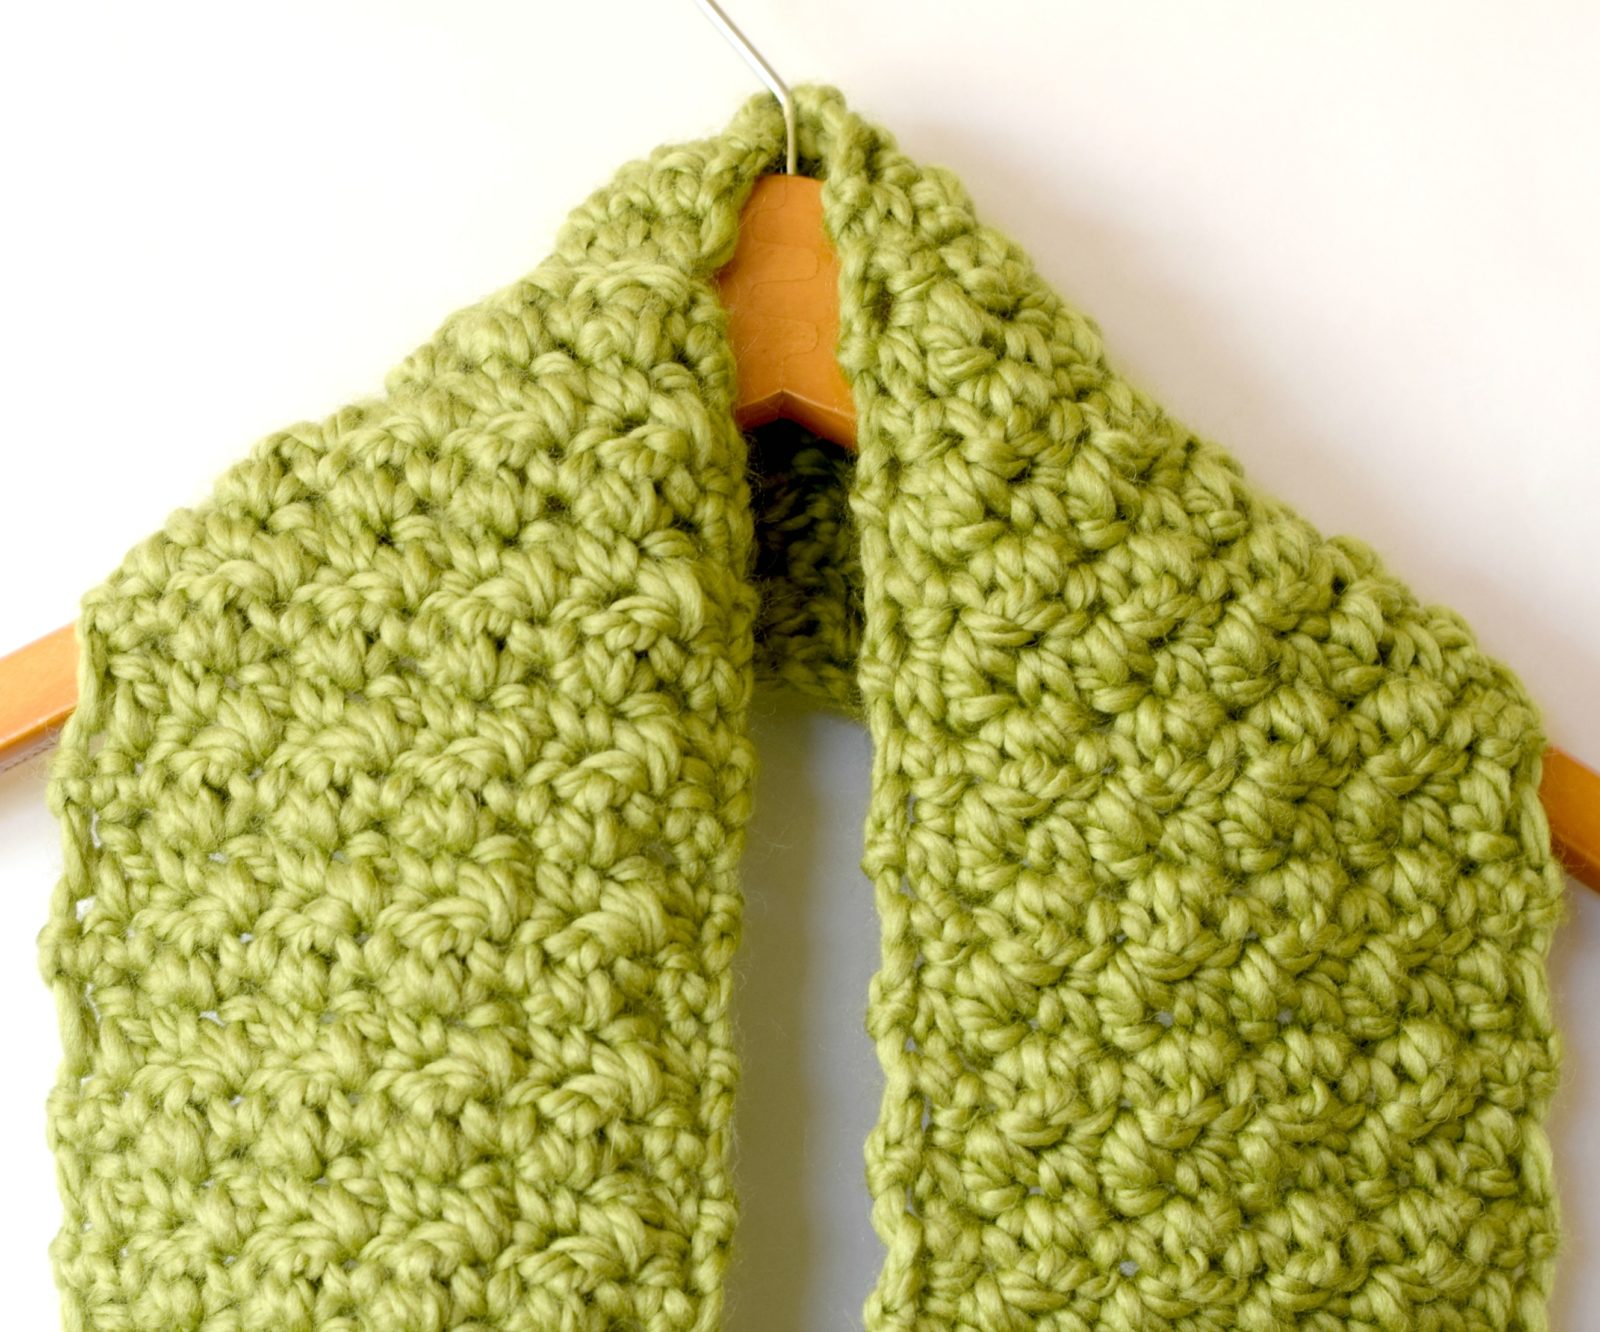 Crochet Scarf Pattern Thick Yarn : Chunky, Squishy Crochet Infinity Scarf Pattern ? Mama In A ...